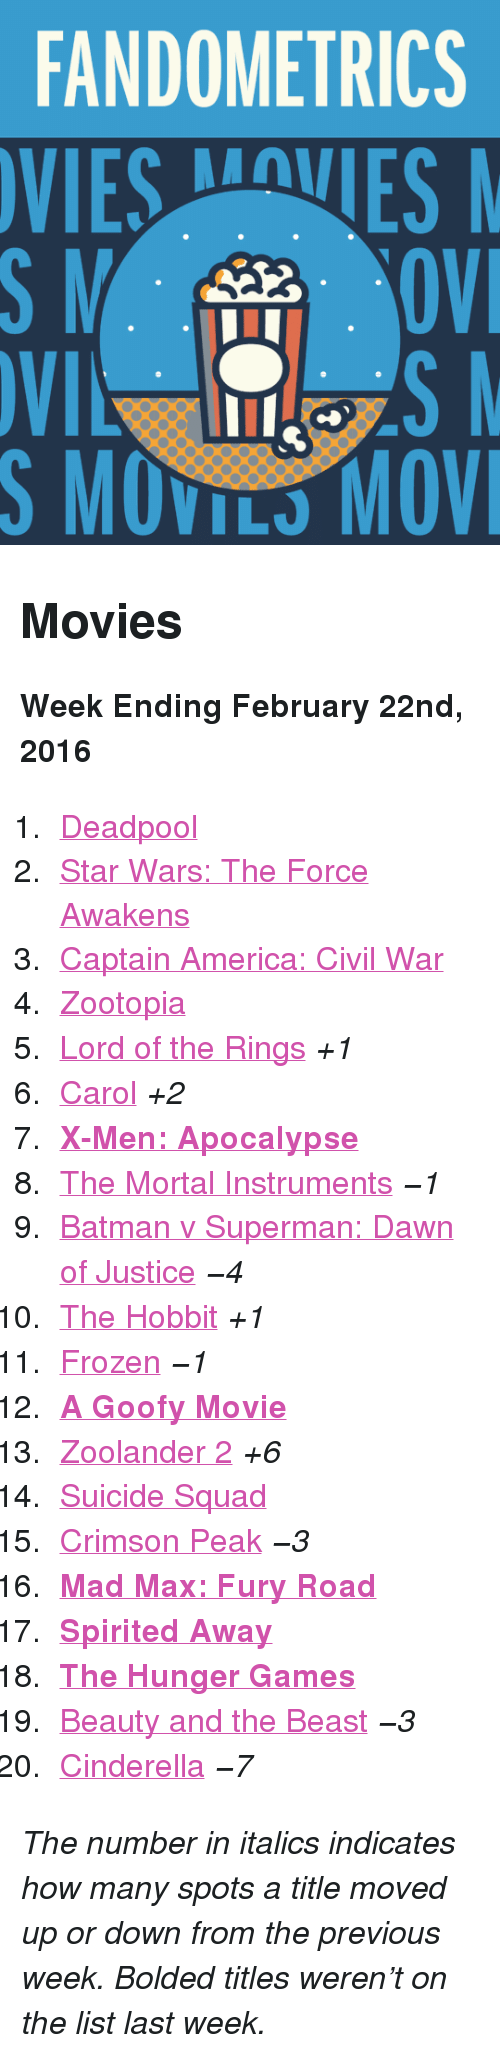 """Goofy Movie: FANDOMETRICS  VIESVES  S MOVILS MOV <h2>Movies</h2><p><b>Week Ending February 22nd, 2016</b></p><ol><li><a href=""""http://www.tumblr.com/search/deadpool"""">Deadpool</a></li>  <li><a href=""""http://www.tumblr.com/search/star%20wars:%20the%20force%20awakens"""">Star Wars: The Force Awakens</a></li>  <li><a href=""""http://www.tumblr.com/search/captain%20america%20civil%20war"""">Captain America: Civil War</a></li>  <li><a href=""""http://www.tumblr.com/search/zootopia"""">Zootopia</a></li>  <li><a href=""""http://www.tumblr.com/search/lotr"""">Lord of the Rings</a><i>+1</i></li>  <li><a href=""""http://www.tumblr.com/search/carol"""">Carol</a><i>+2</i></li>  <li><a href=""""http://www.tumblr.com/search/x-men""""><b>X-Men: Apocalypse</b></a></li>  <li><a href=""""http://www.tumblr.com/search/the%20mortal%20instruments"""">The Mortal Instruments</a><i>−1</i></li>  <li><a href=""""http://www.tumblr.com/search/batman%20v%20superman"""">Batman v Superman: Dawn of Justice</a><i>−4</i></li>  <li><a href=""""http://www.tumblr.com/search/the%20hobbit"""">The Hobbit</a><i>+1</i></li>  <li><a href=""""http://www.tumblr.com/search/frozen"""">Frozen</a><i>−1</i></li>  <li><a href=""""http://www.tumblr.com/search/a%20goofy%20movie""""><b>A Goofy Movie</b></a></li>  <li><a href=""""http://www.tumblr.com/search/zoolander%202"""">Zoolander 2</a><i>+6</i></li>  <li><a href=""""http://www.tumblr.com/search/suicide%20squad"""">Suicide Squad</a></li>  <li><a href=""""http://www.tumblr.com/search/crimson%20peak"""">Crimson Peak</a><i>−3</i></li>  <li><a href=""""http://www.tumblr.com/search/mad%20max""""><b>Mad Max: Fury Road</b></a></li>  <li><a href=""""http://www.tumblr.com/search/spirited%20away""""><b>Spirited Away</b></a></li>  <li><a href=""""http://www.tumblr.com/search/the%20hunger%20games""""><b>The Hunger Games</b></a></li>  <li><a href=""""http://www.tumblr.com/search/beauty%20and%20the%20beast"""">Beauty and the Beast</a><i>−3</i></li>  <li><a href=""""http://www.tumblr.com/search/cinderella"""">Cinderella</a><i><i>−7</i></i></li></ol><p><i>The number in italics indicates how ma"""